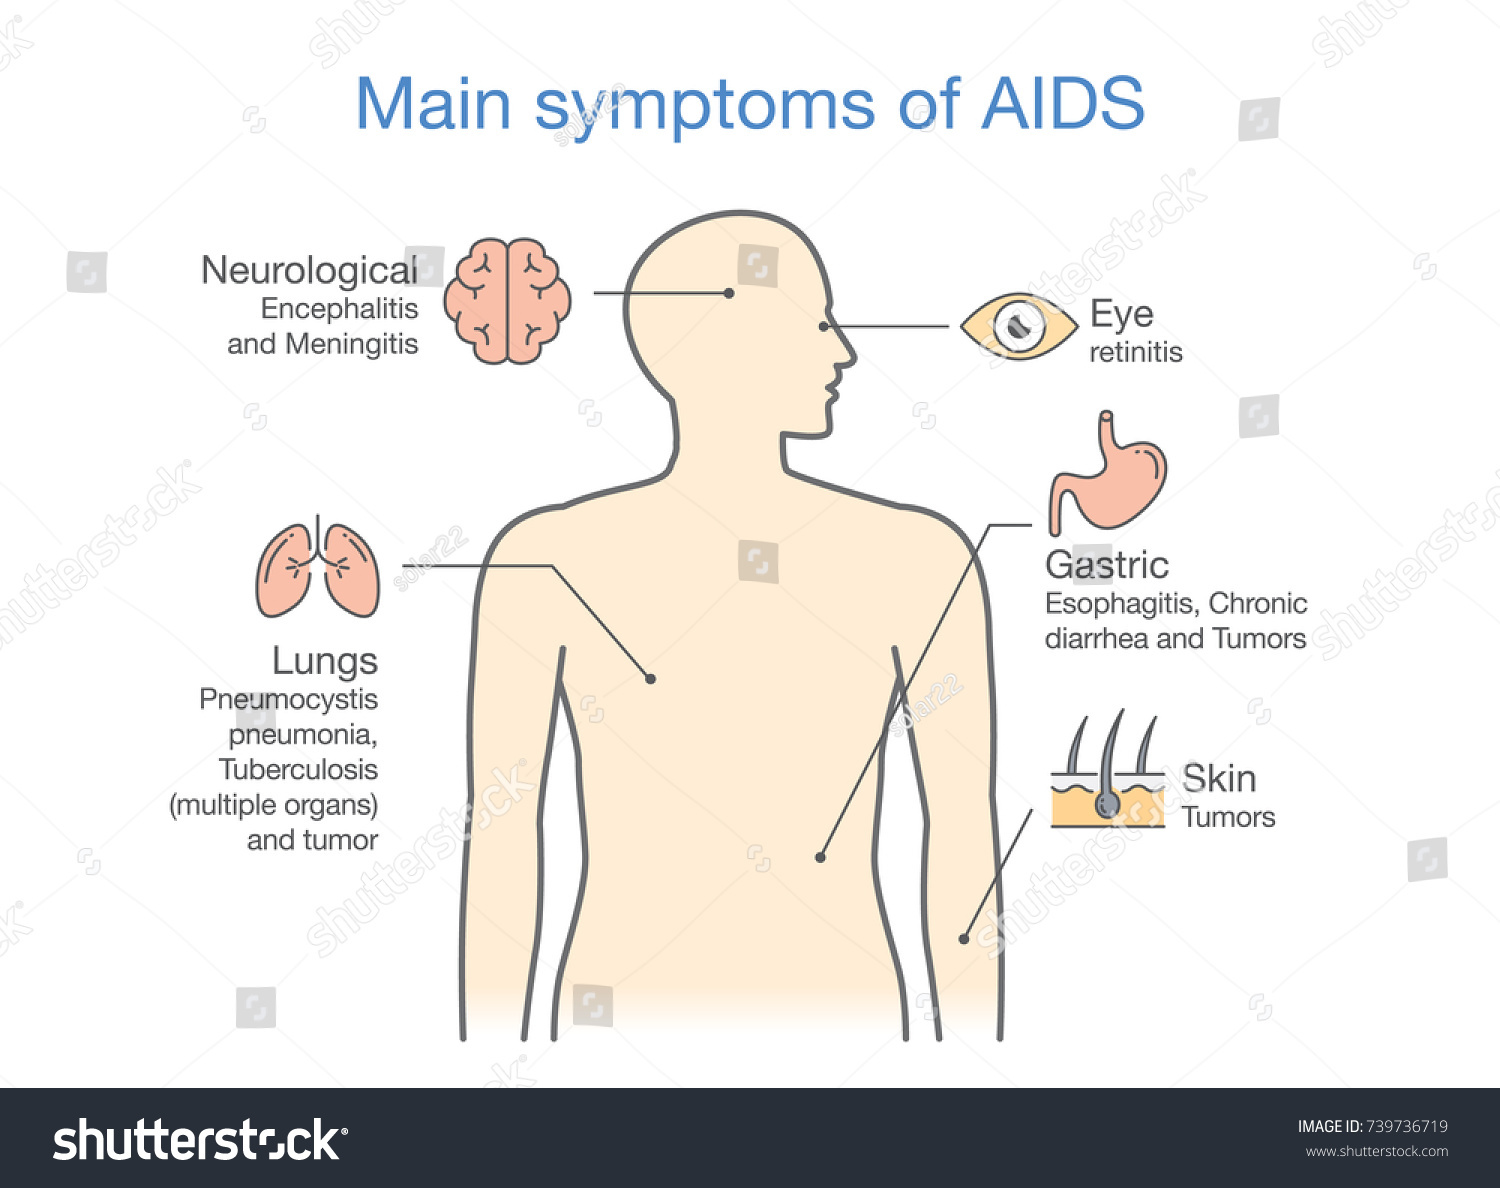 hight resolution of diagram of main symptoms of aids illustration about medical